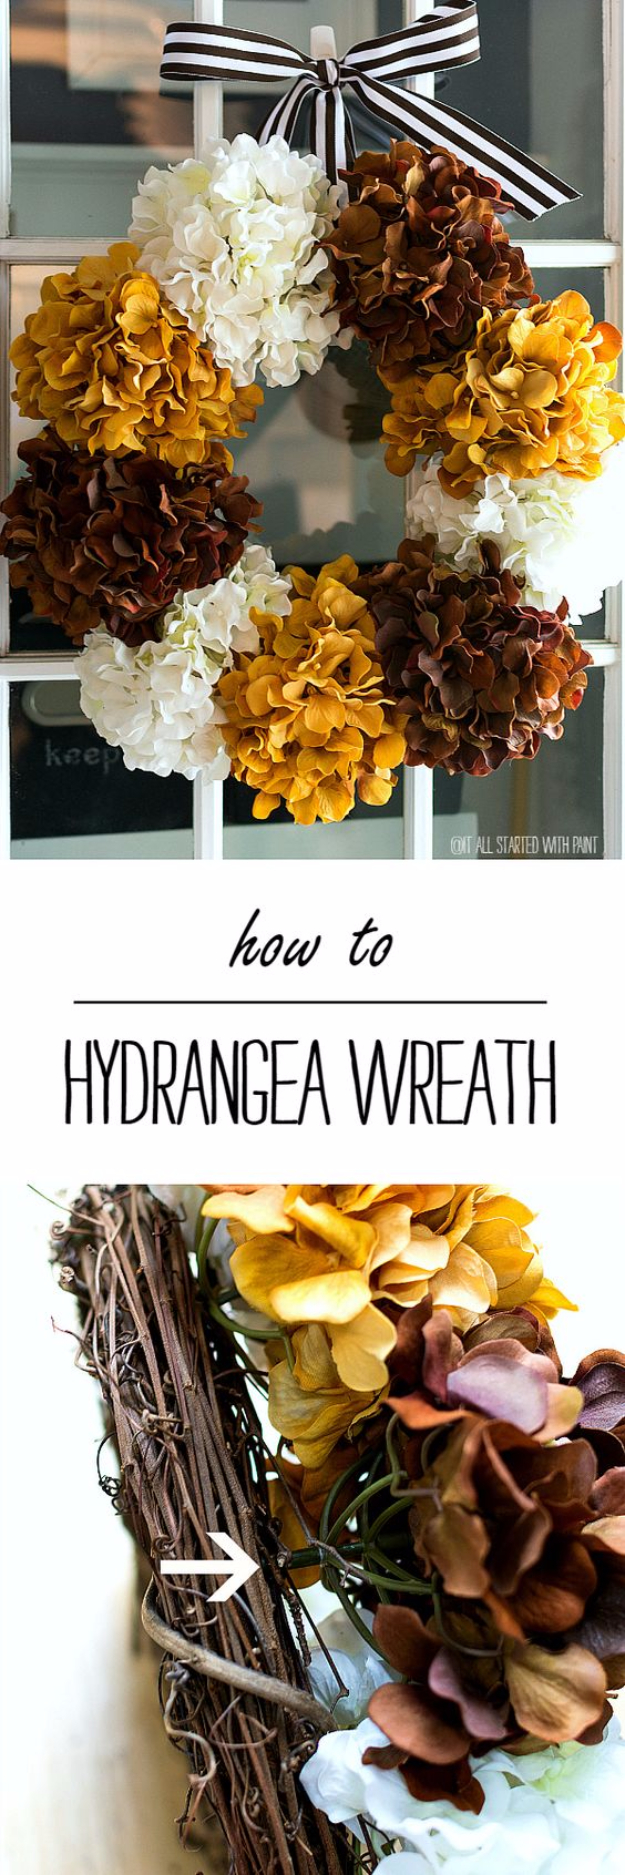 35 Fall Wreaths for Your Door - Hydrangea Wreath For Fall- Fall Wreaths For Front Door, Fall Wreaths Ideas To Try, Easy DIY Fall Wreaths, Brilliant Fall Wreath DIY, Porch Decor, Cool Ideas For Fall, Fall Projects